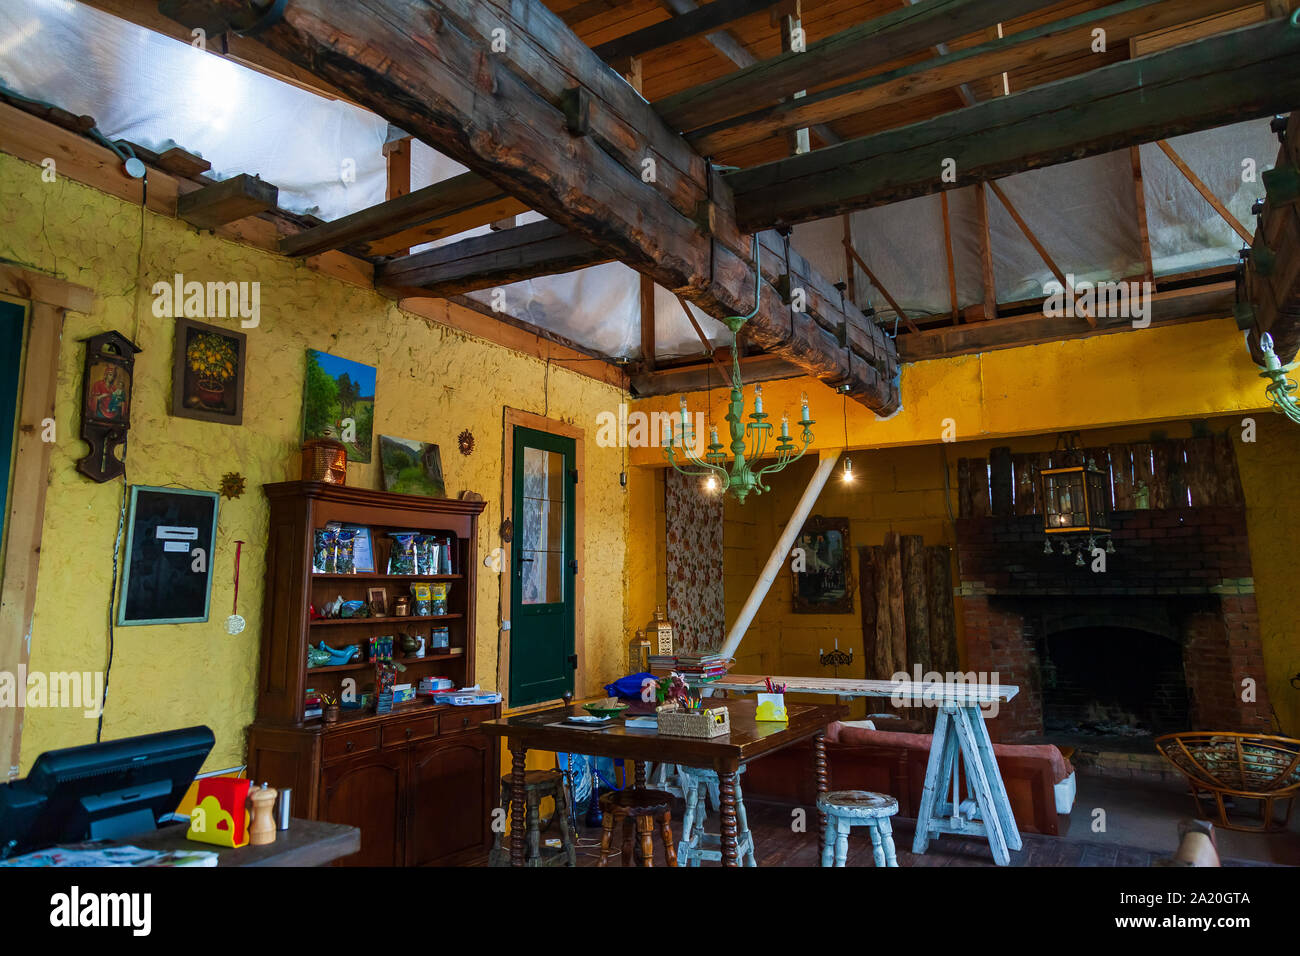 Cafe Or Restaurant Interior In Retro Vintage Style With Colored Old Things Wooden Table And Chairs And Roof Interior Design Stock Photo Alamy